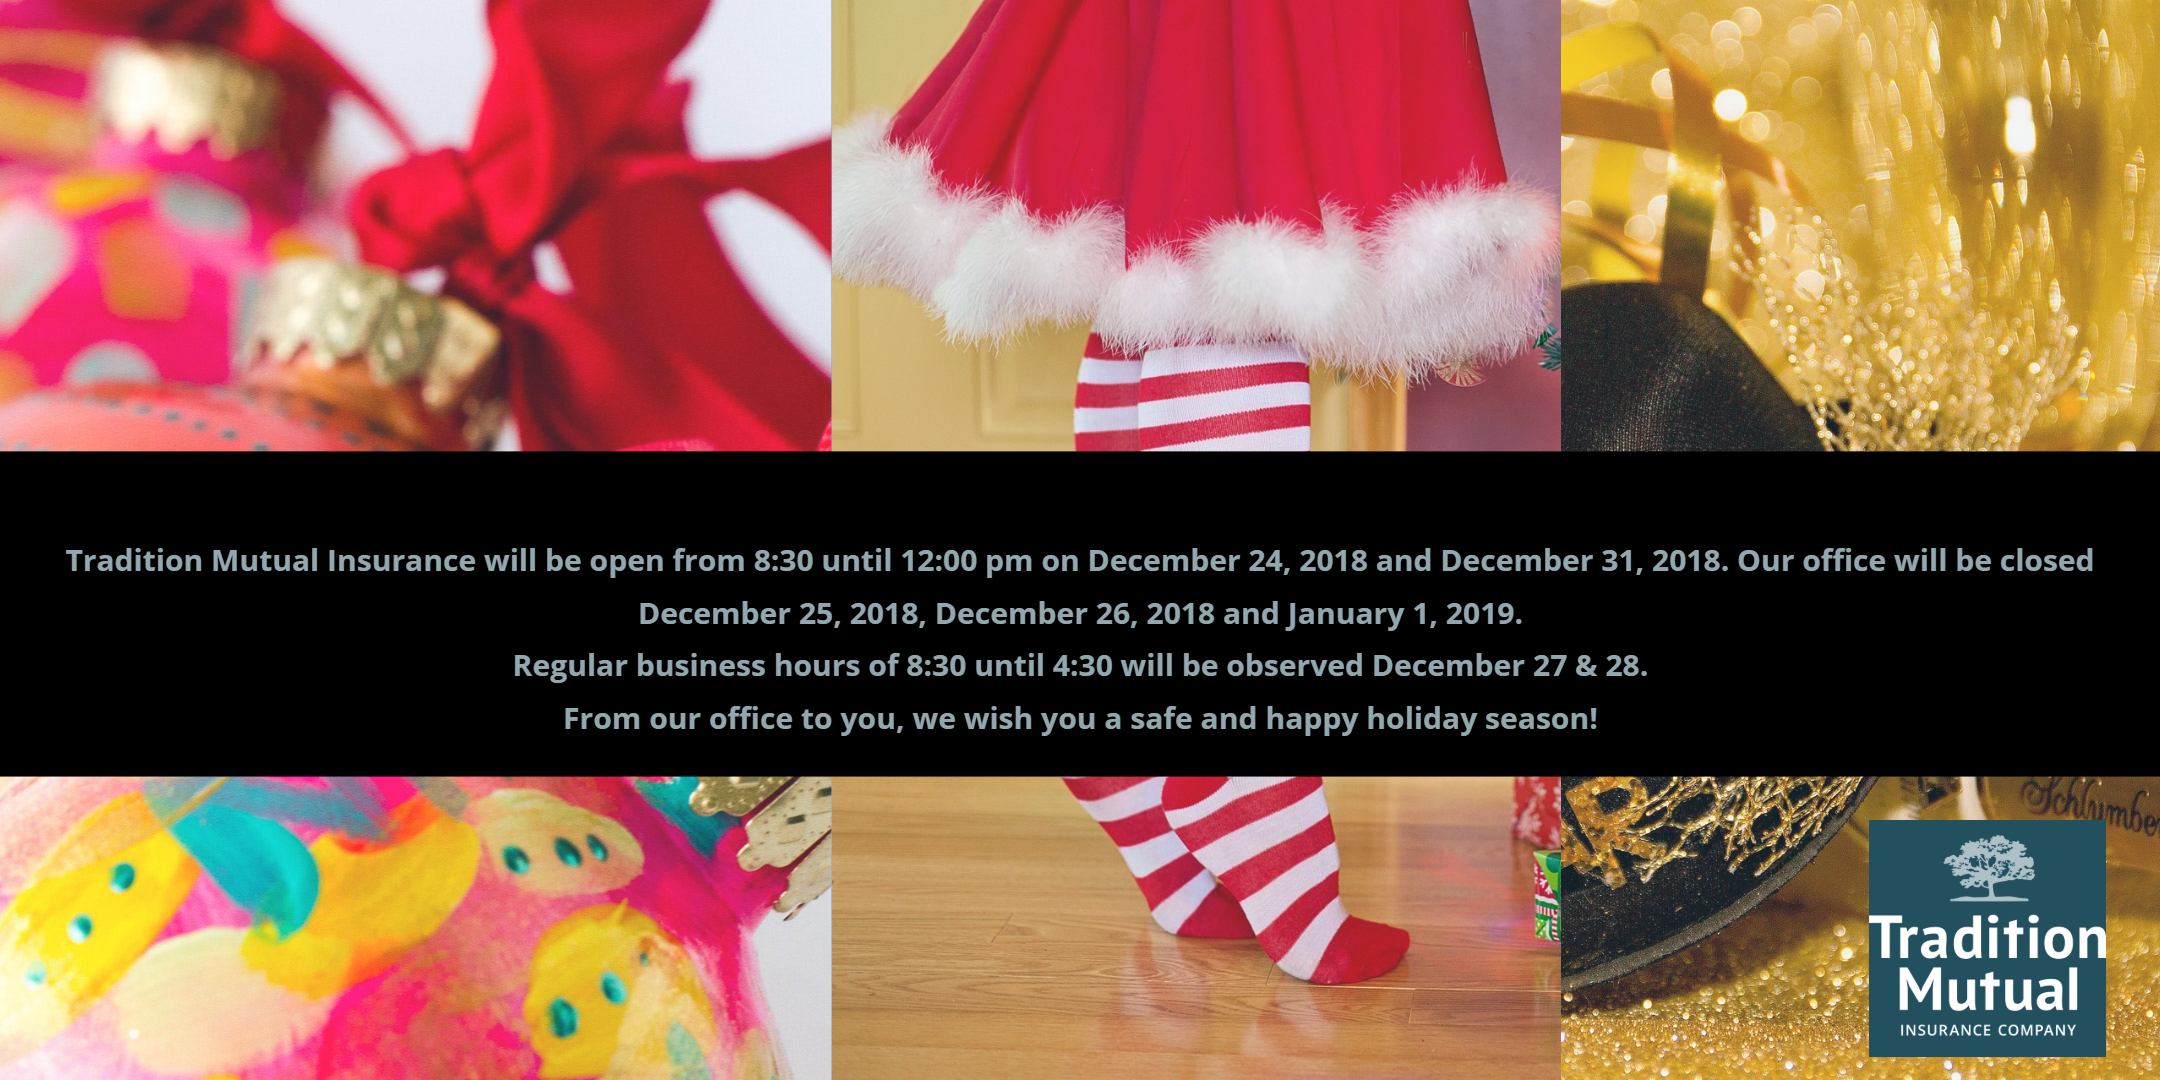 Holiday Hours 2018 - Tradition Mutual Insurance Company